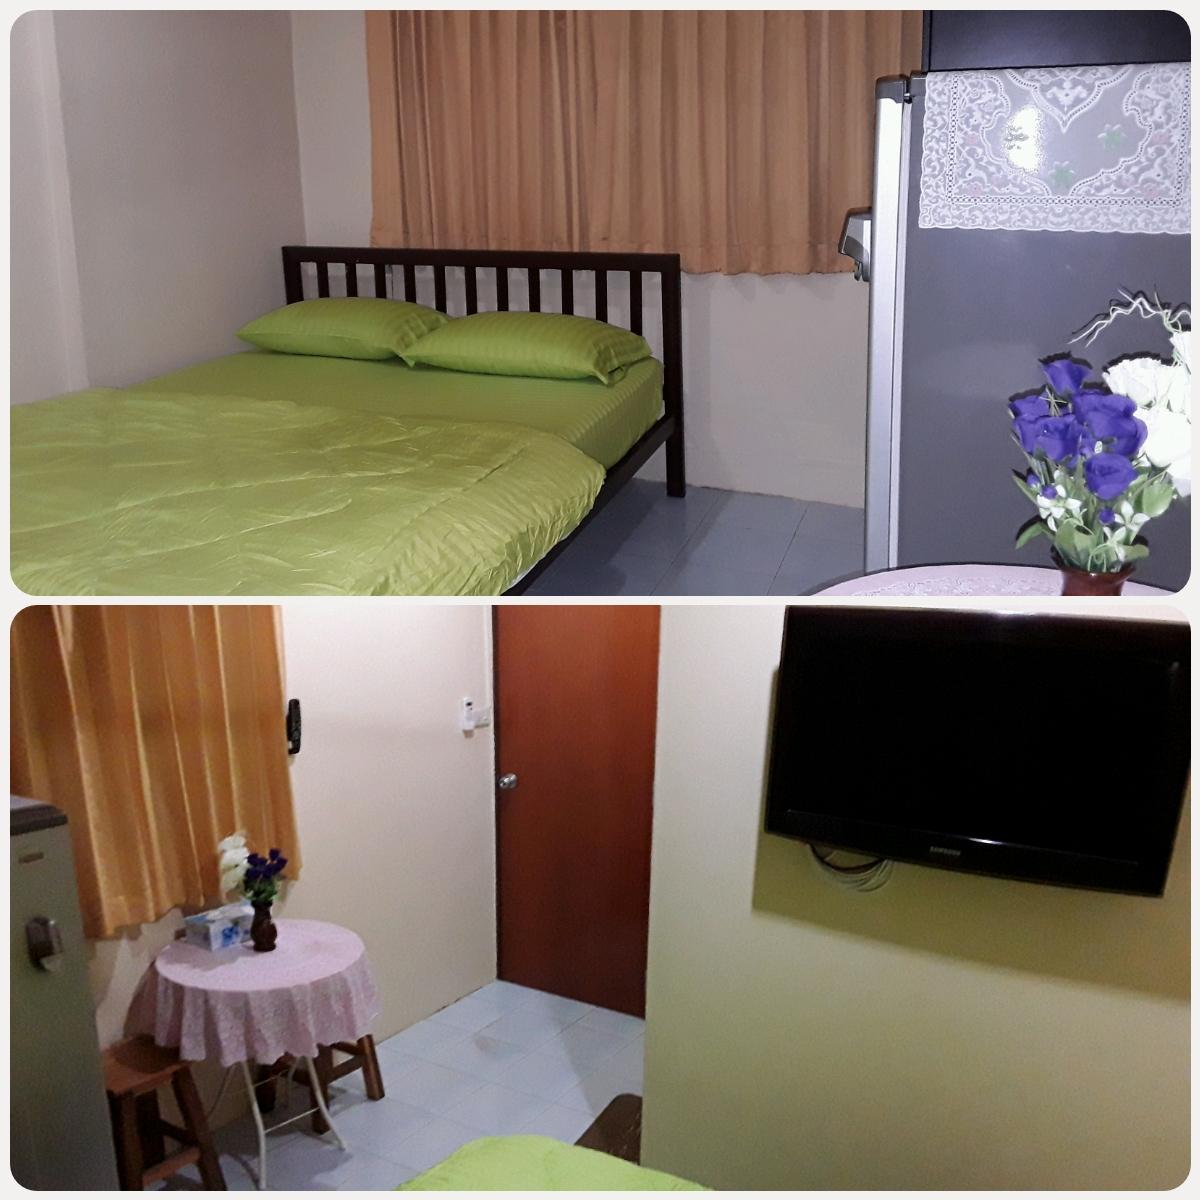 Hotel Review: M&N guesthouse – Prices, Photos & Deals